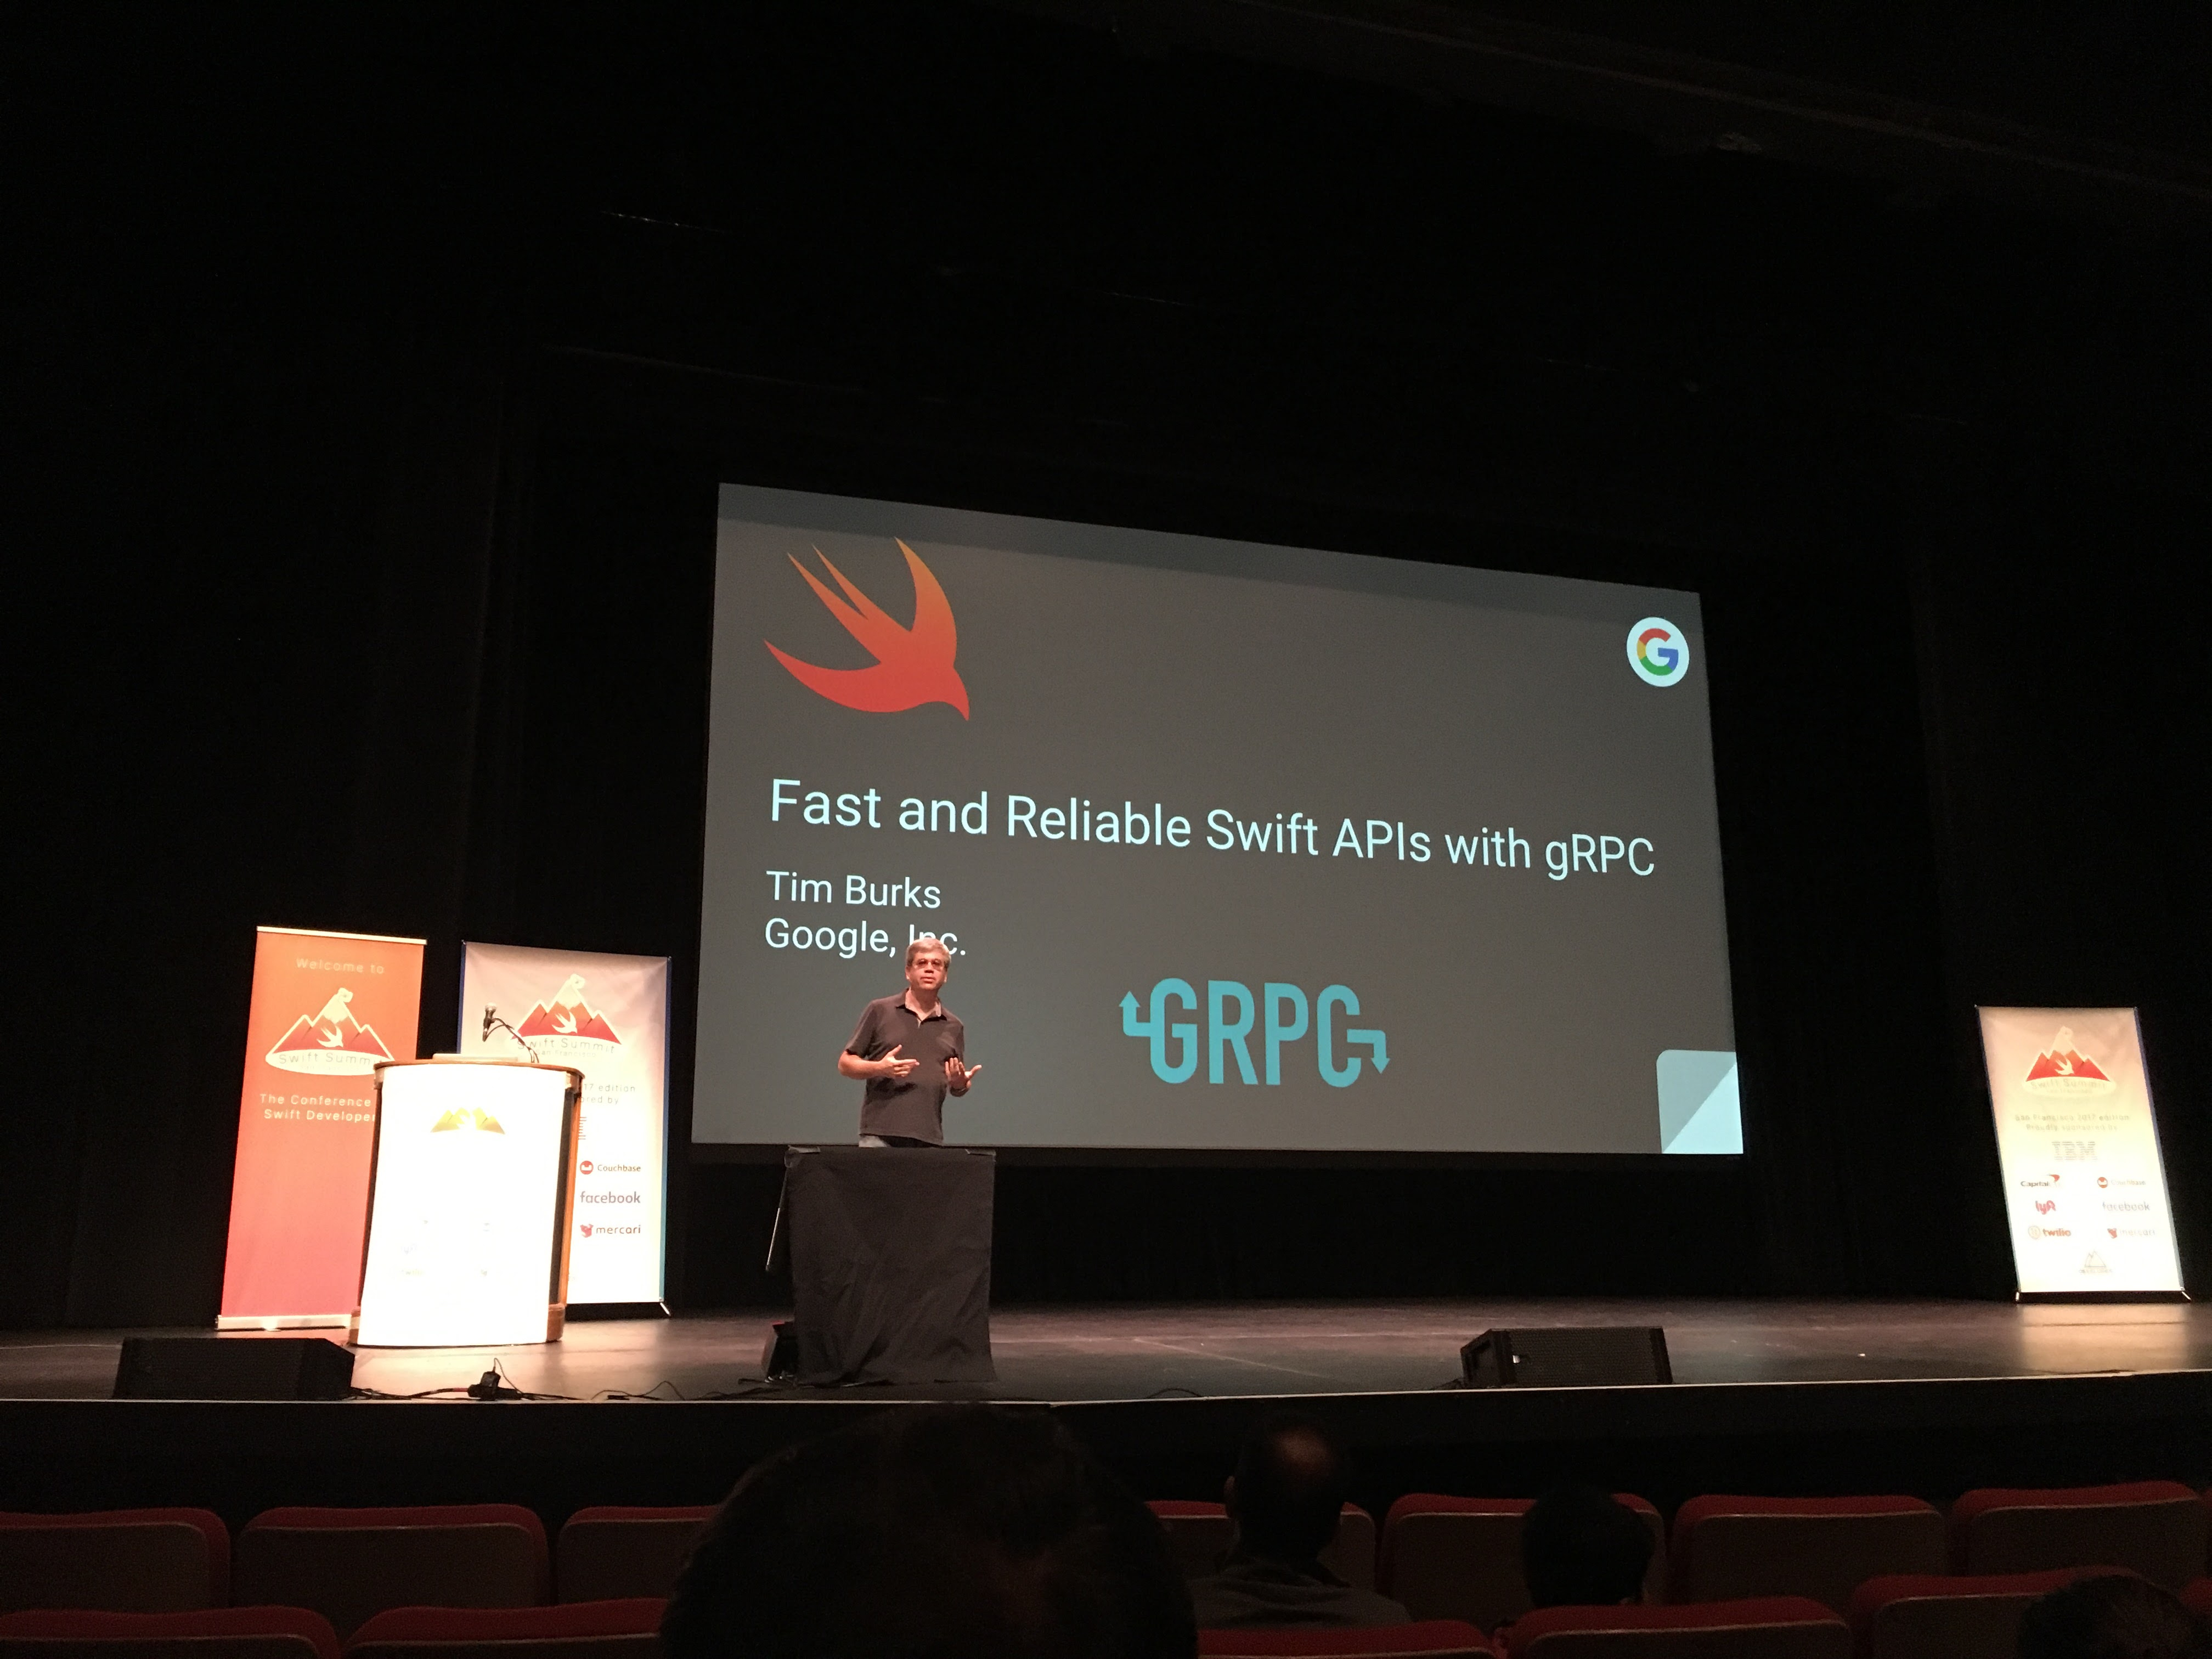 Fast and Reliable Swift APIs with gRPC